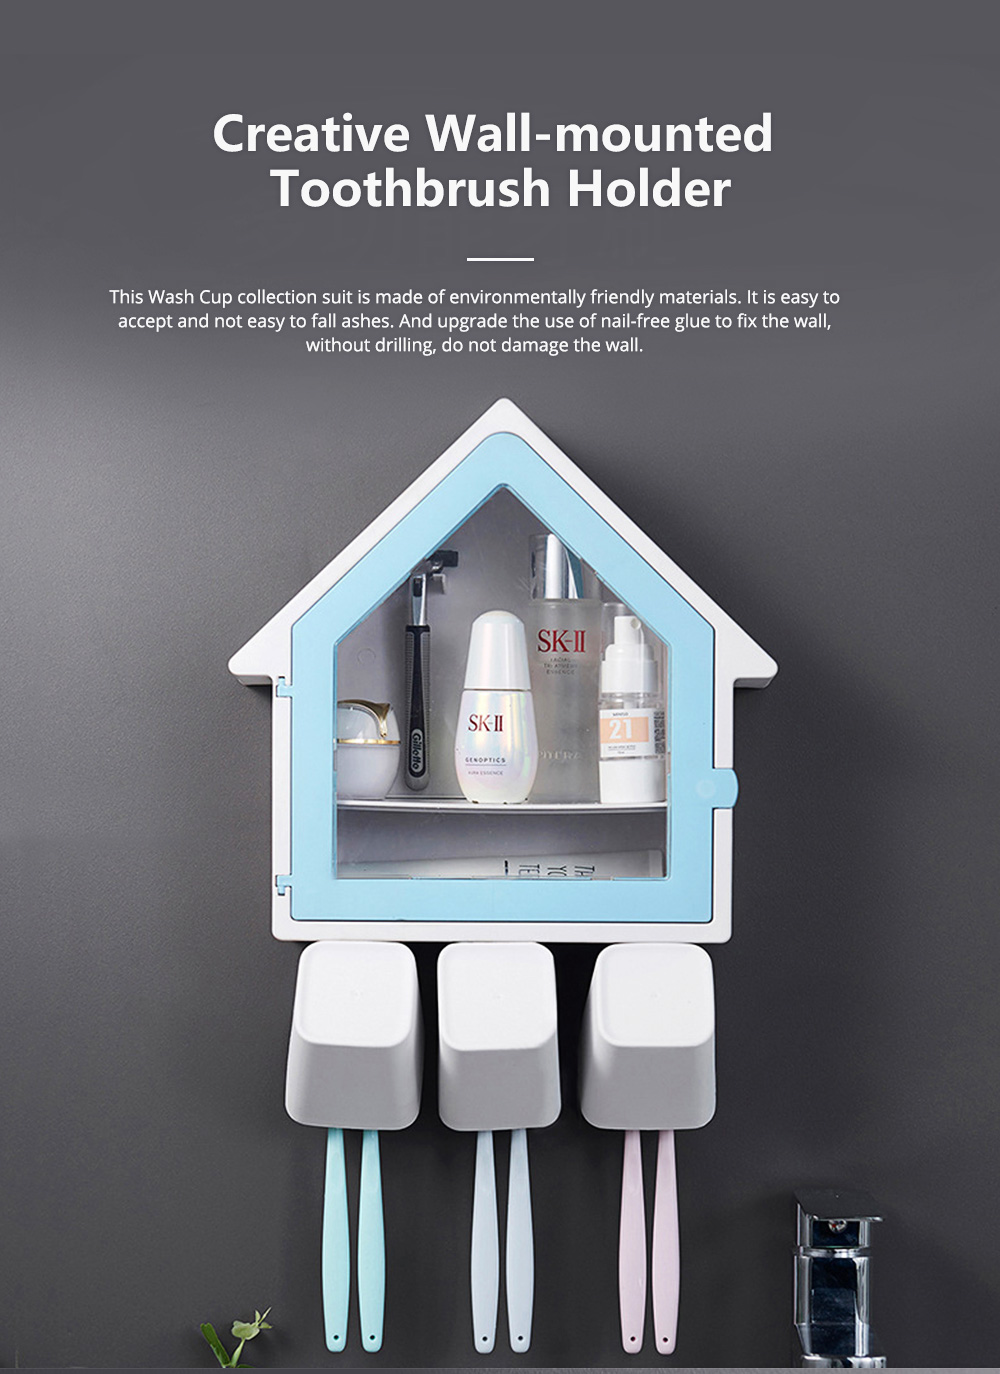 Creative Wall-mounted House-shaped Toothbrush Holder Multifunctional Three-Population Home Rinse Cup Set 0